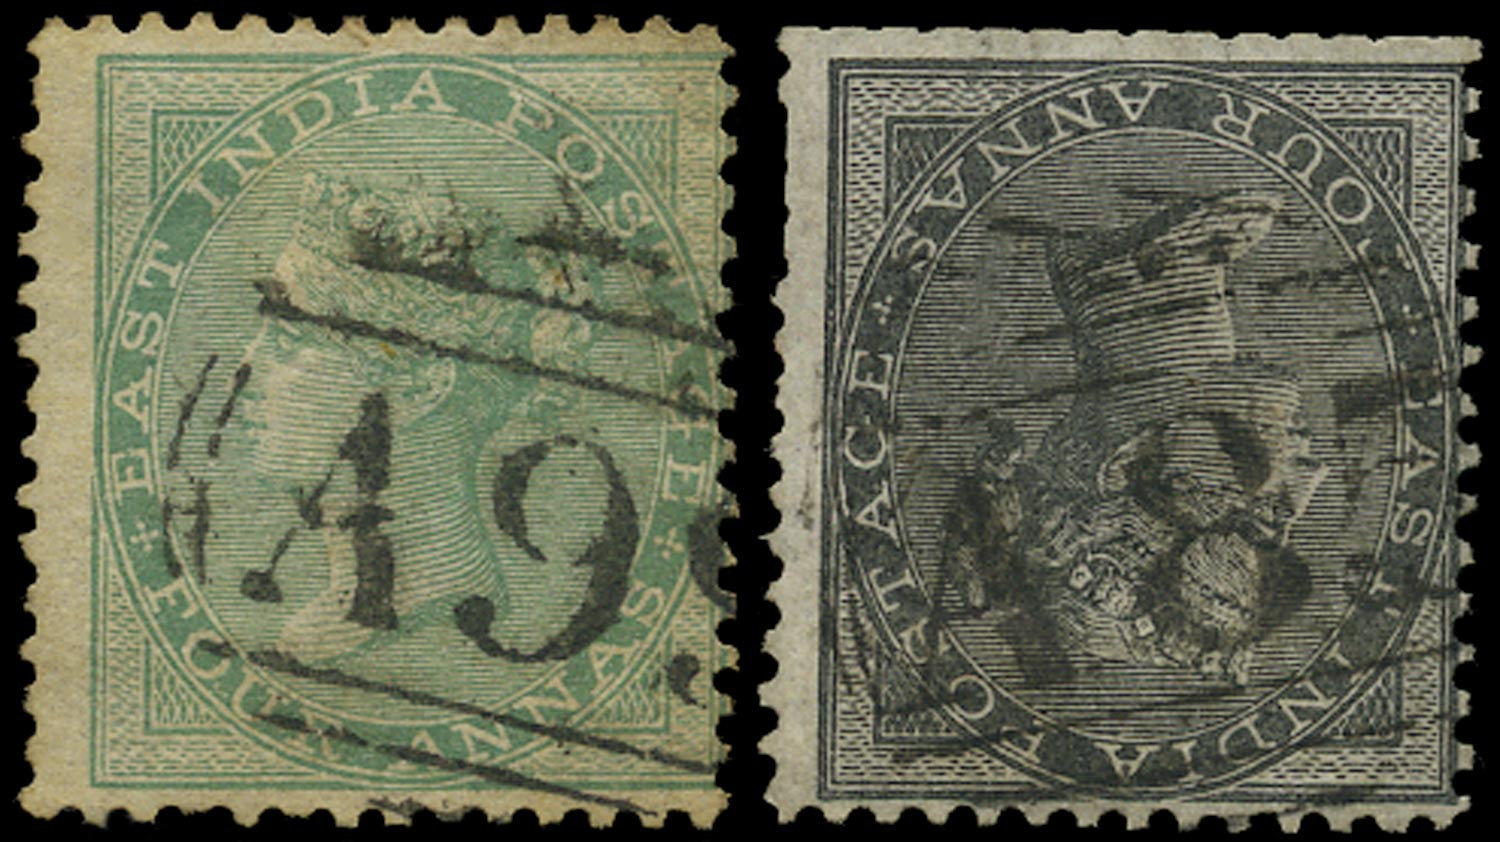 INDIA 1856  SG45, 64 Cancel P&O Mailboat cancellations